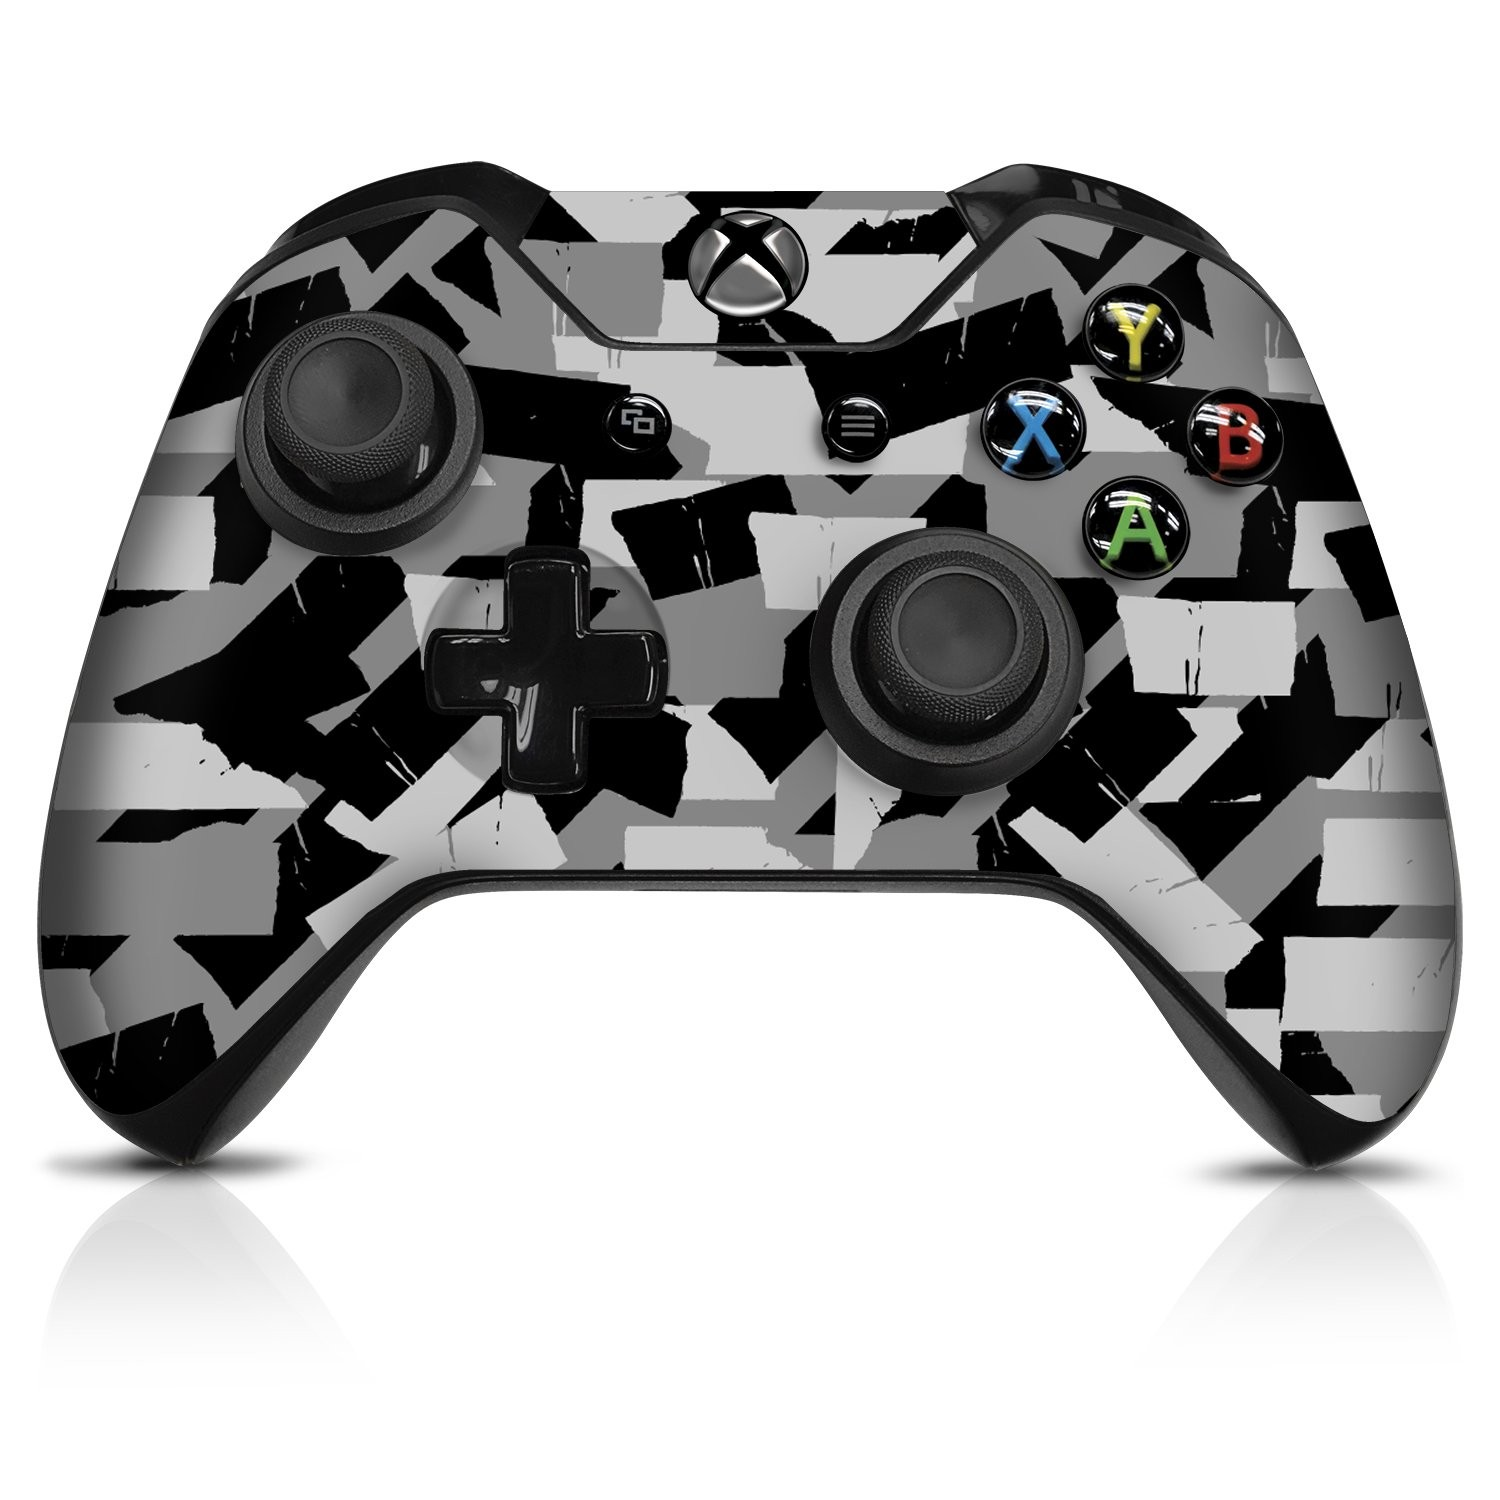 Urban Camo Torn Tape - Xbox One Controller Skin - Officially Licensed by Xbox